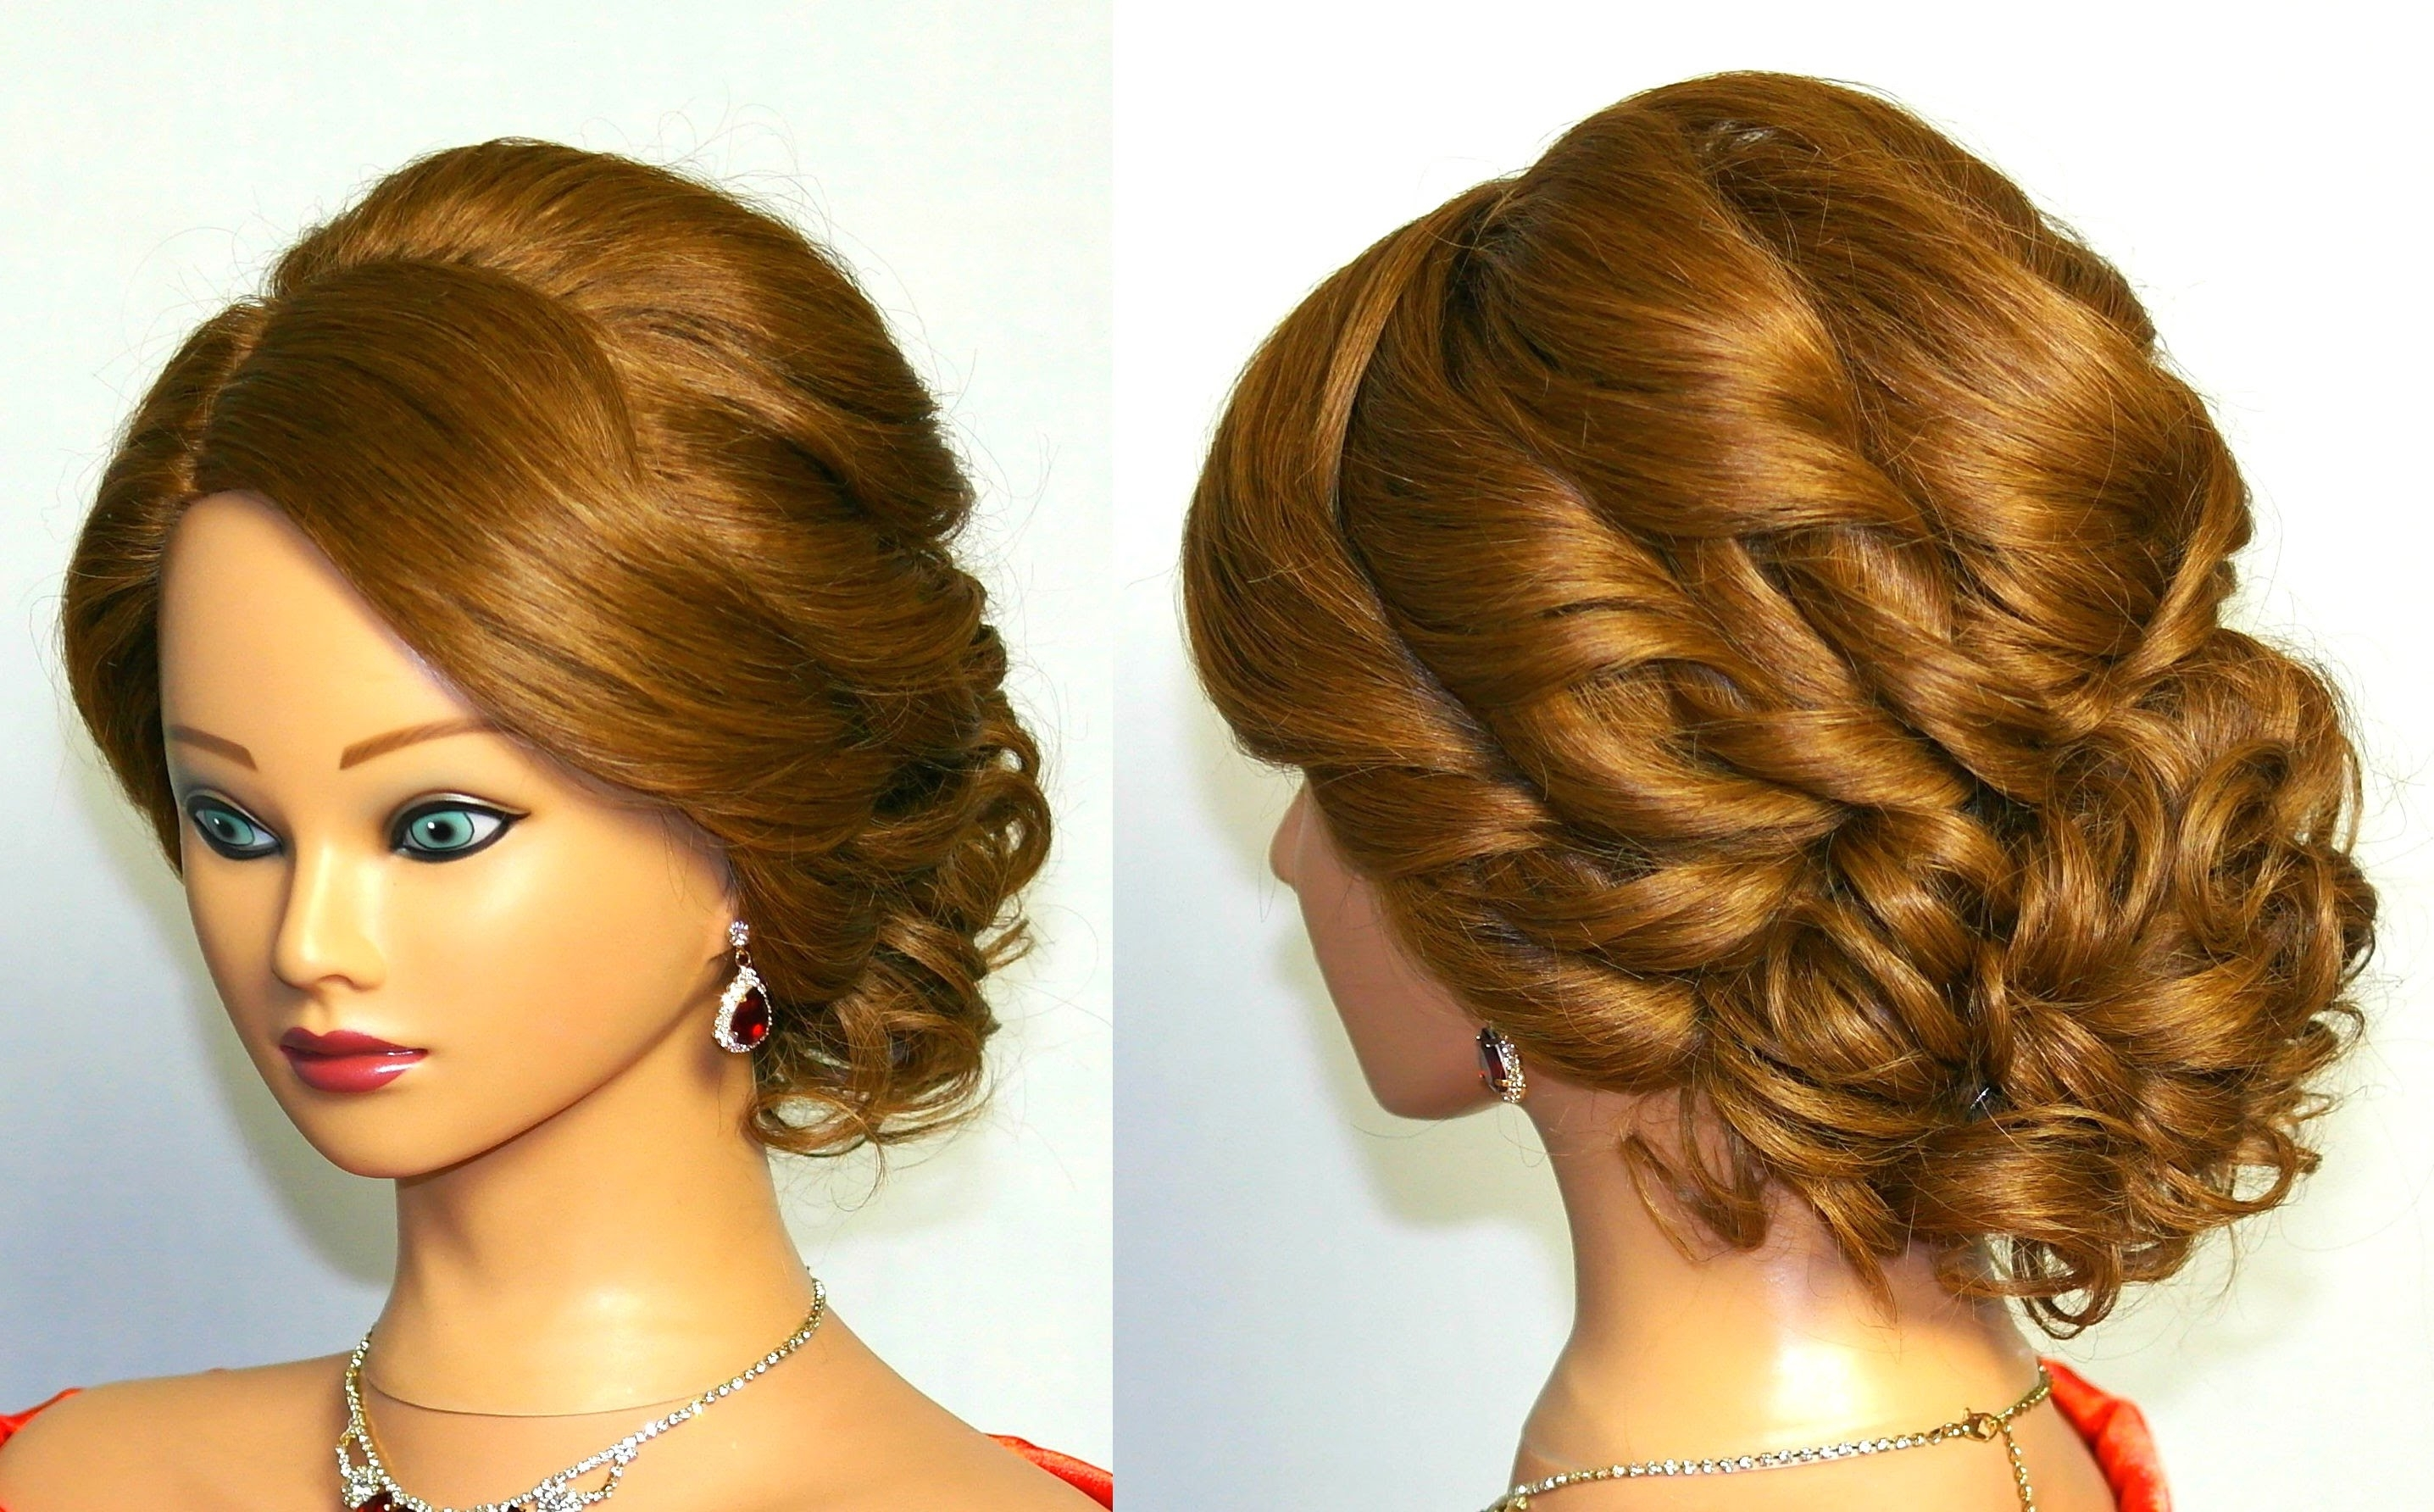 Bridal Curly Updo. Hairstyle For Medium Hair (View 3 of 15)